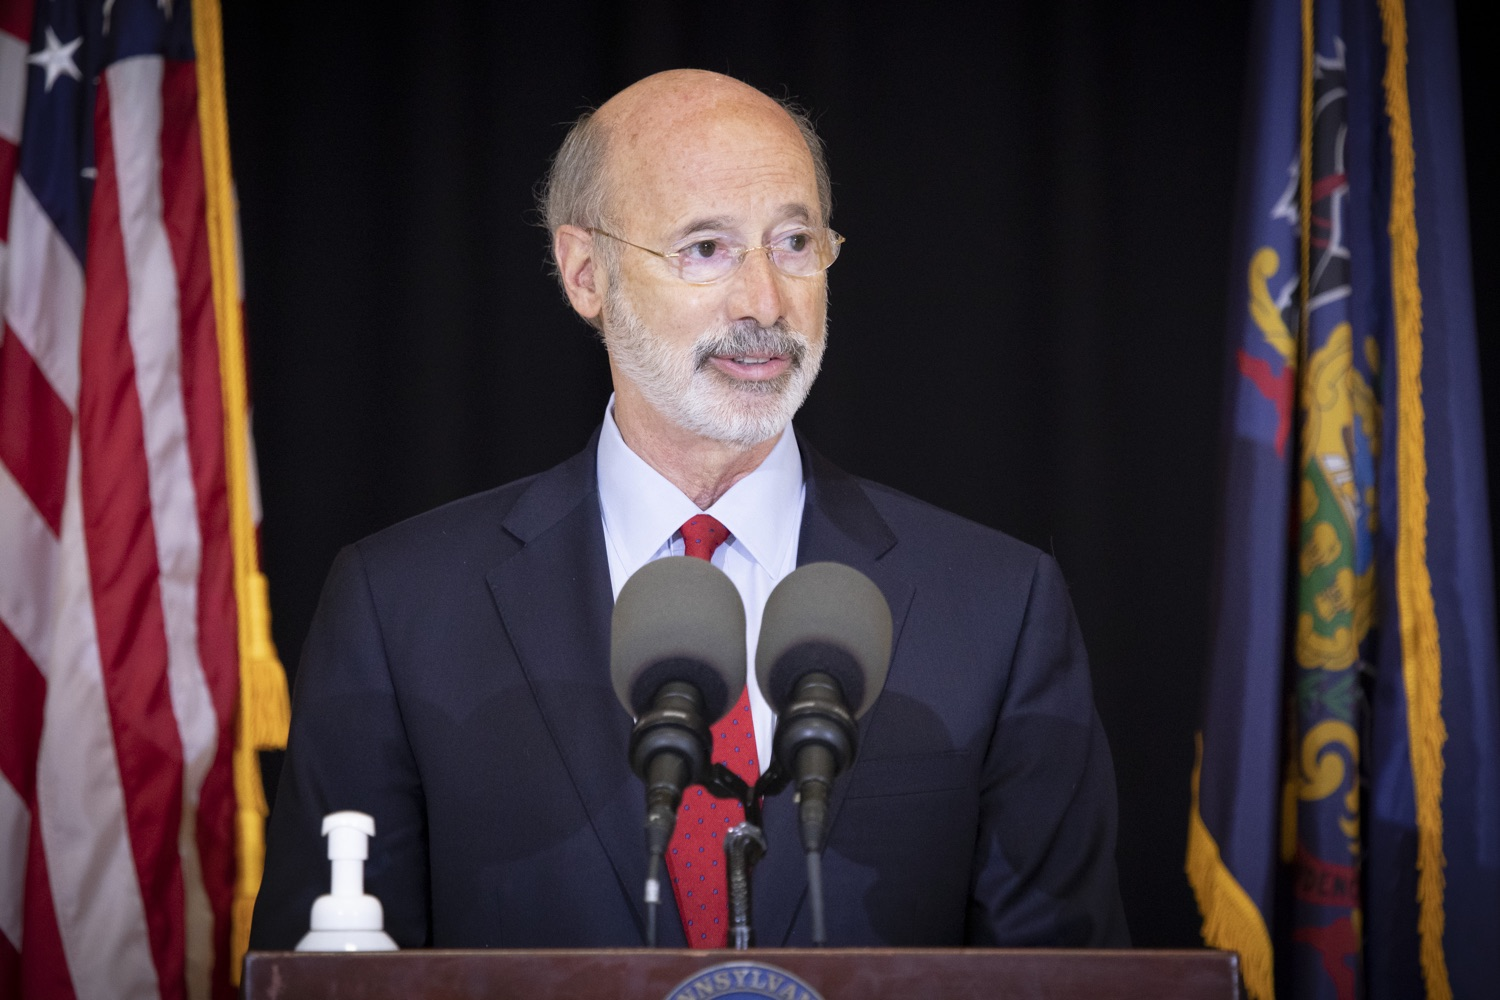 "<a href=""https://filesource.wostreaming.net/commonwealthofpa/photo/18310_gov_adult_use_cannabis_dz_016.jpg"" target=""_blank"">⇣ Download Photo<br></a>Governor Tom Wolf speaks to the press.Governor Tom Wolf visited The Mountain Center in Tobyhanna, Monroe County today to talk about the economic growth potential and restorative justice benefits of legalizing adult-use cannabis, something the state General Assembly has not yet done despite multiple requests from the governor and Lieutenant Governor John Fetterman to take up legislation this fall.  Tobyhanna, PA  October 13, 2020"